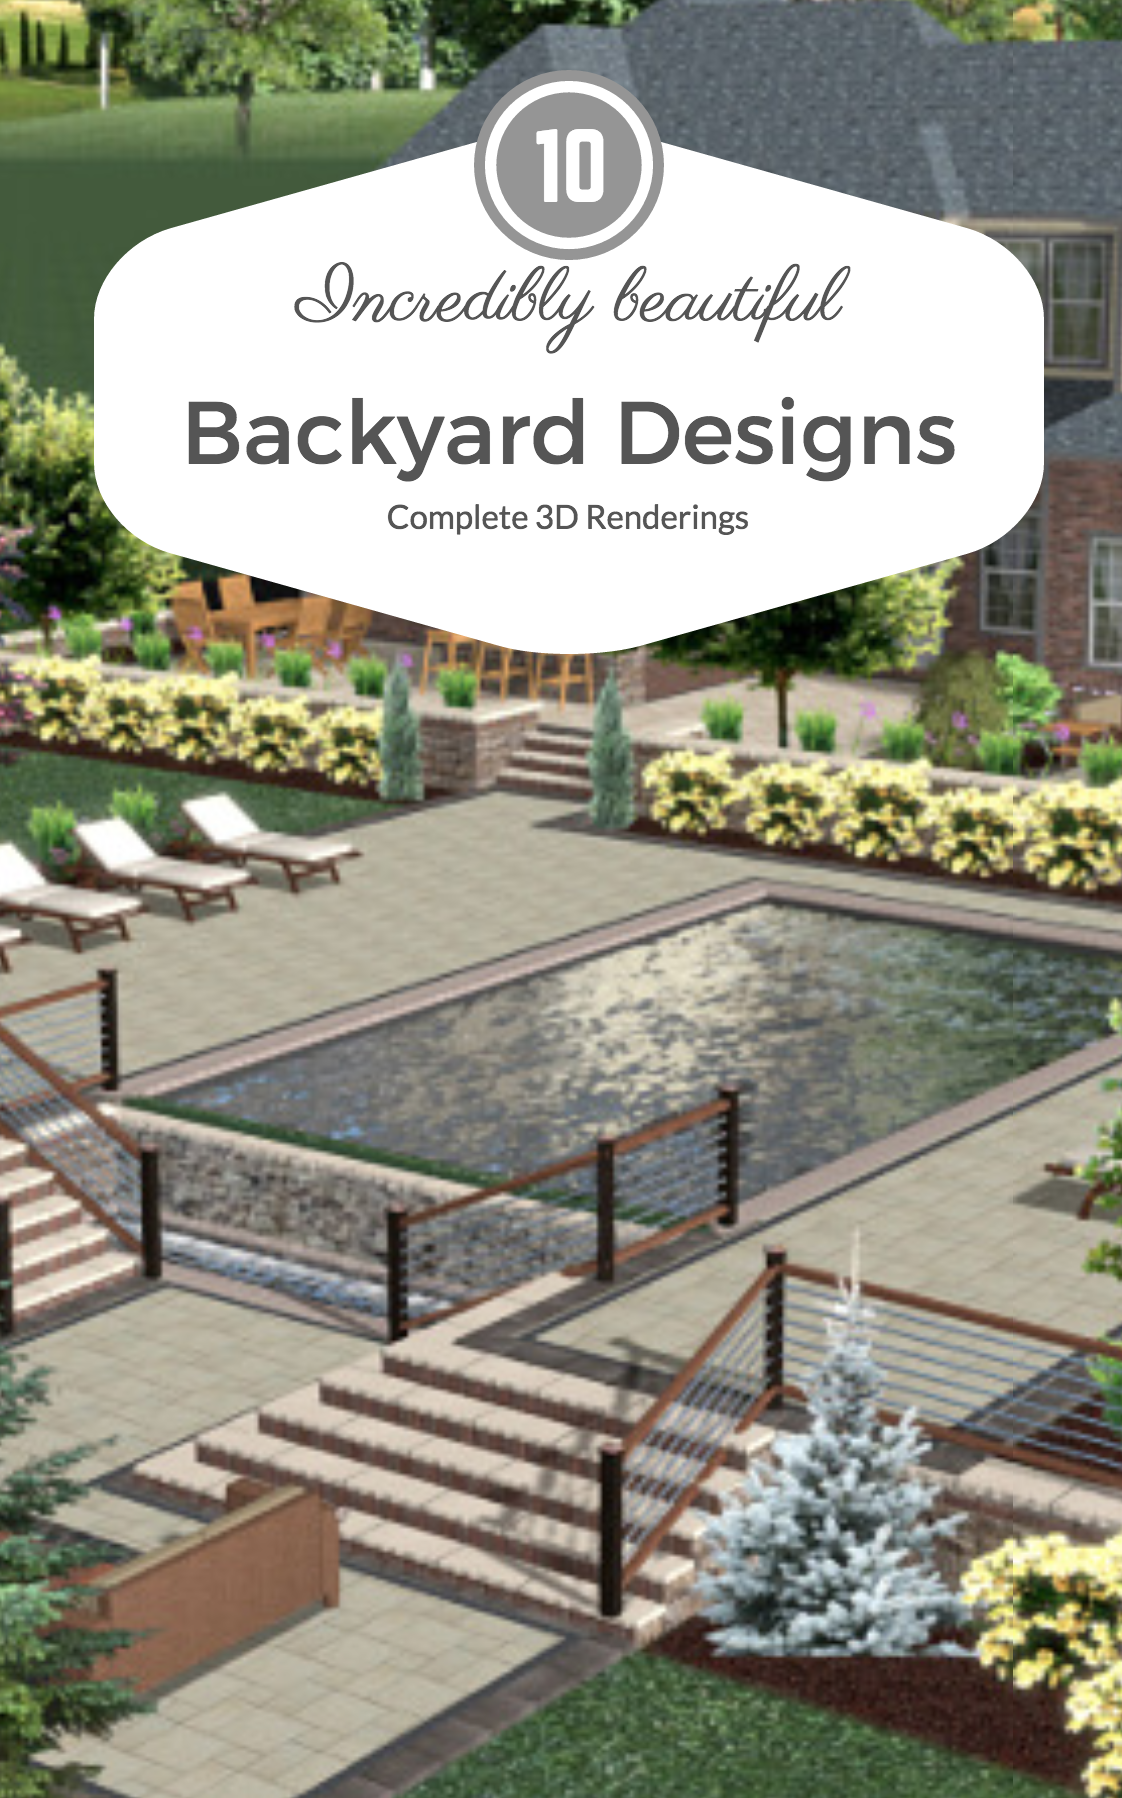 10 Incredibly Beautiful Backyard Designs in 3D in Long Island, NY